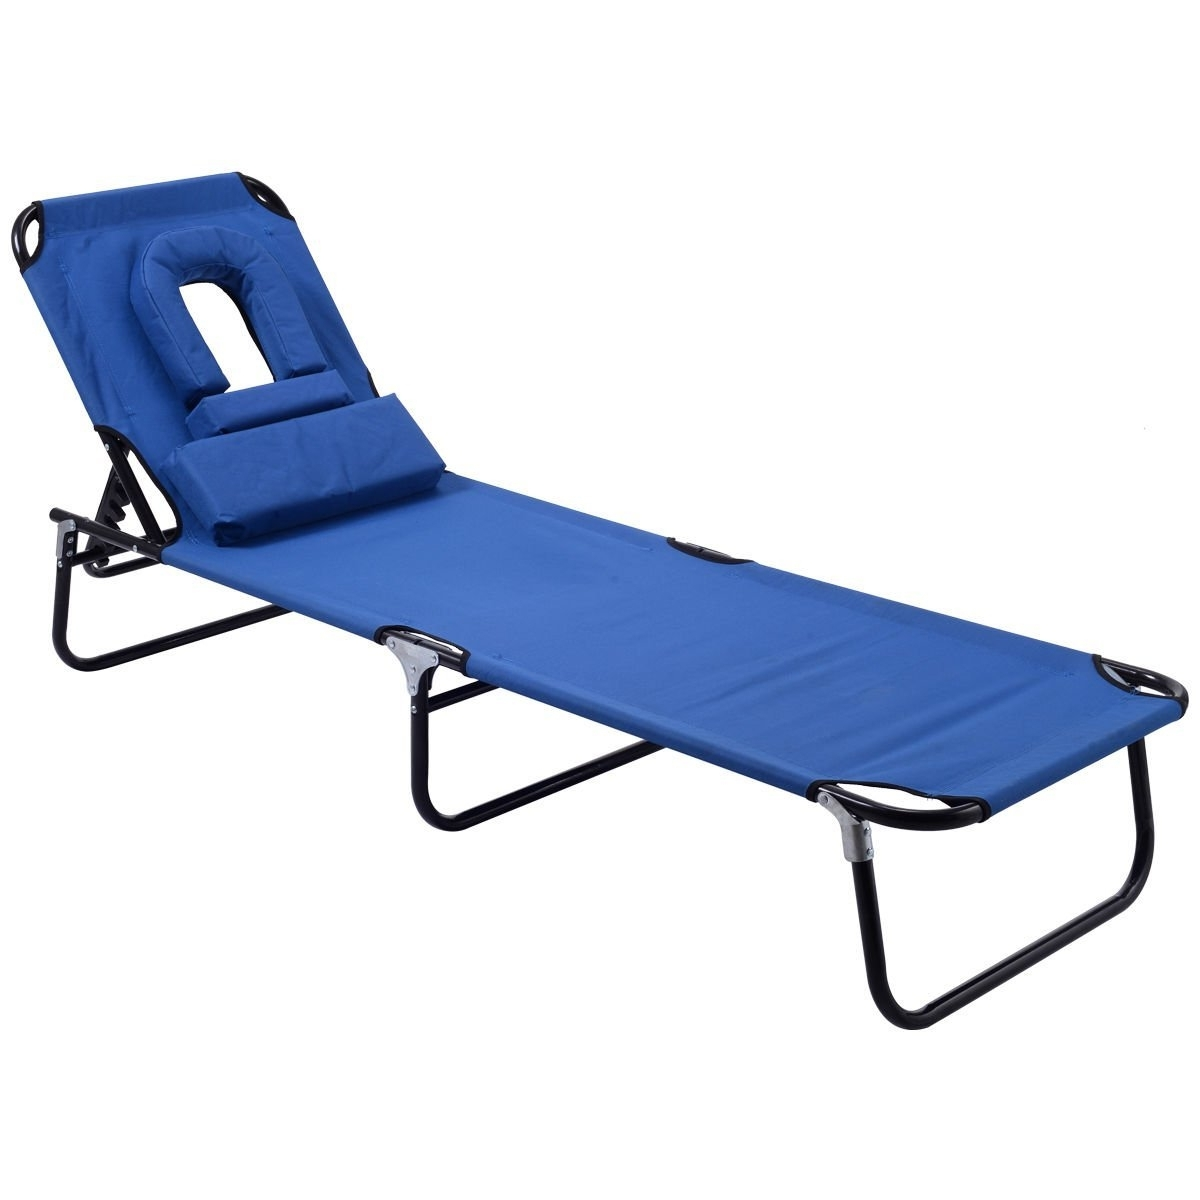 Amazon: Goplus Folding Chaise Lounge Chair Bed Outdoor Patio With Regard To Widely Used Ostrich Chaise Lounge Chairs (View 11 of 15)